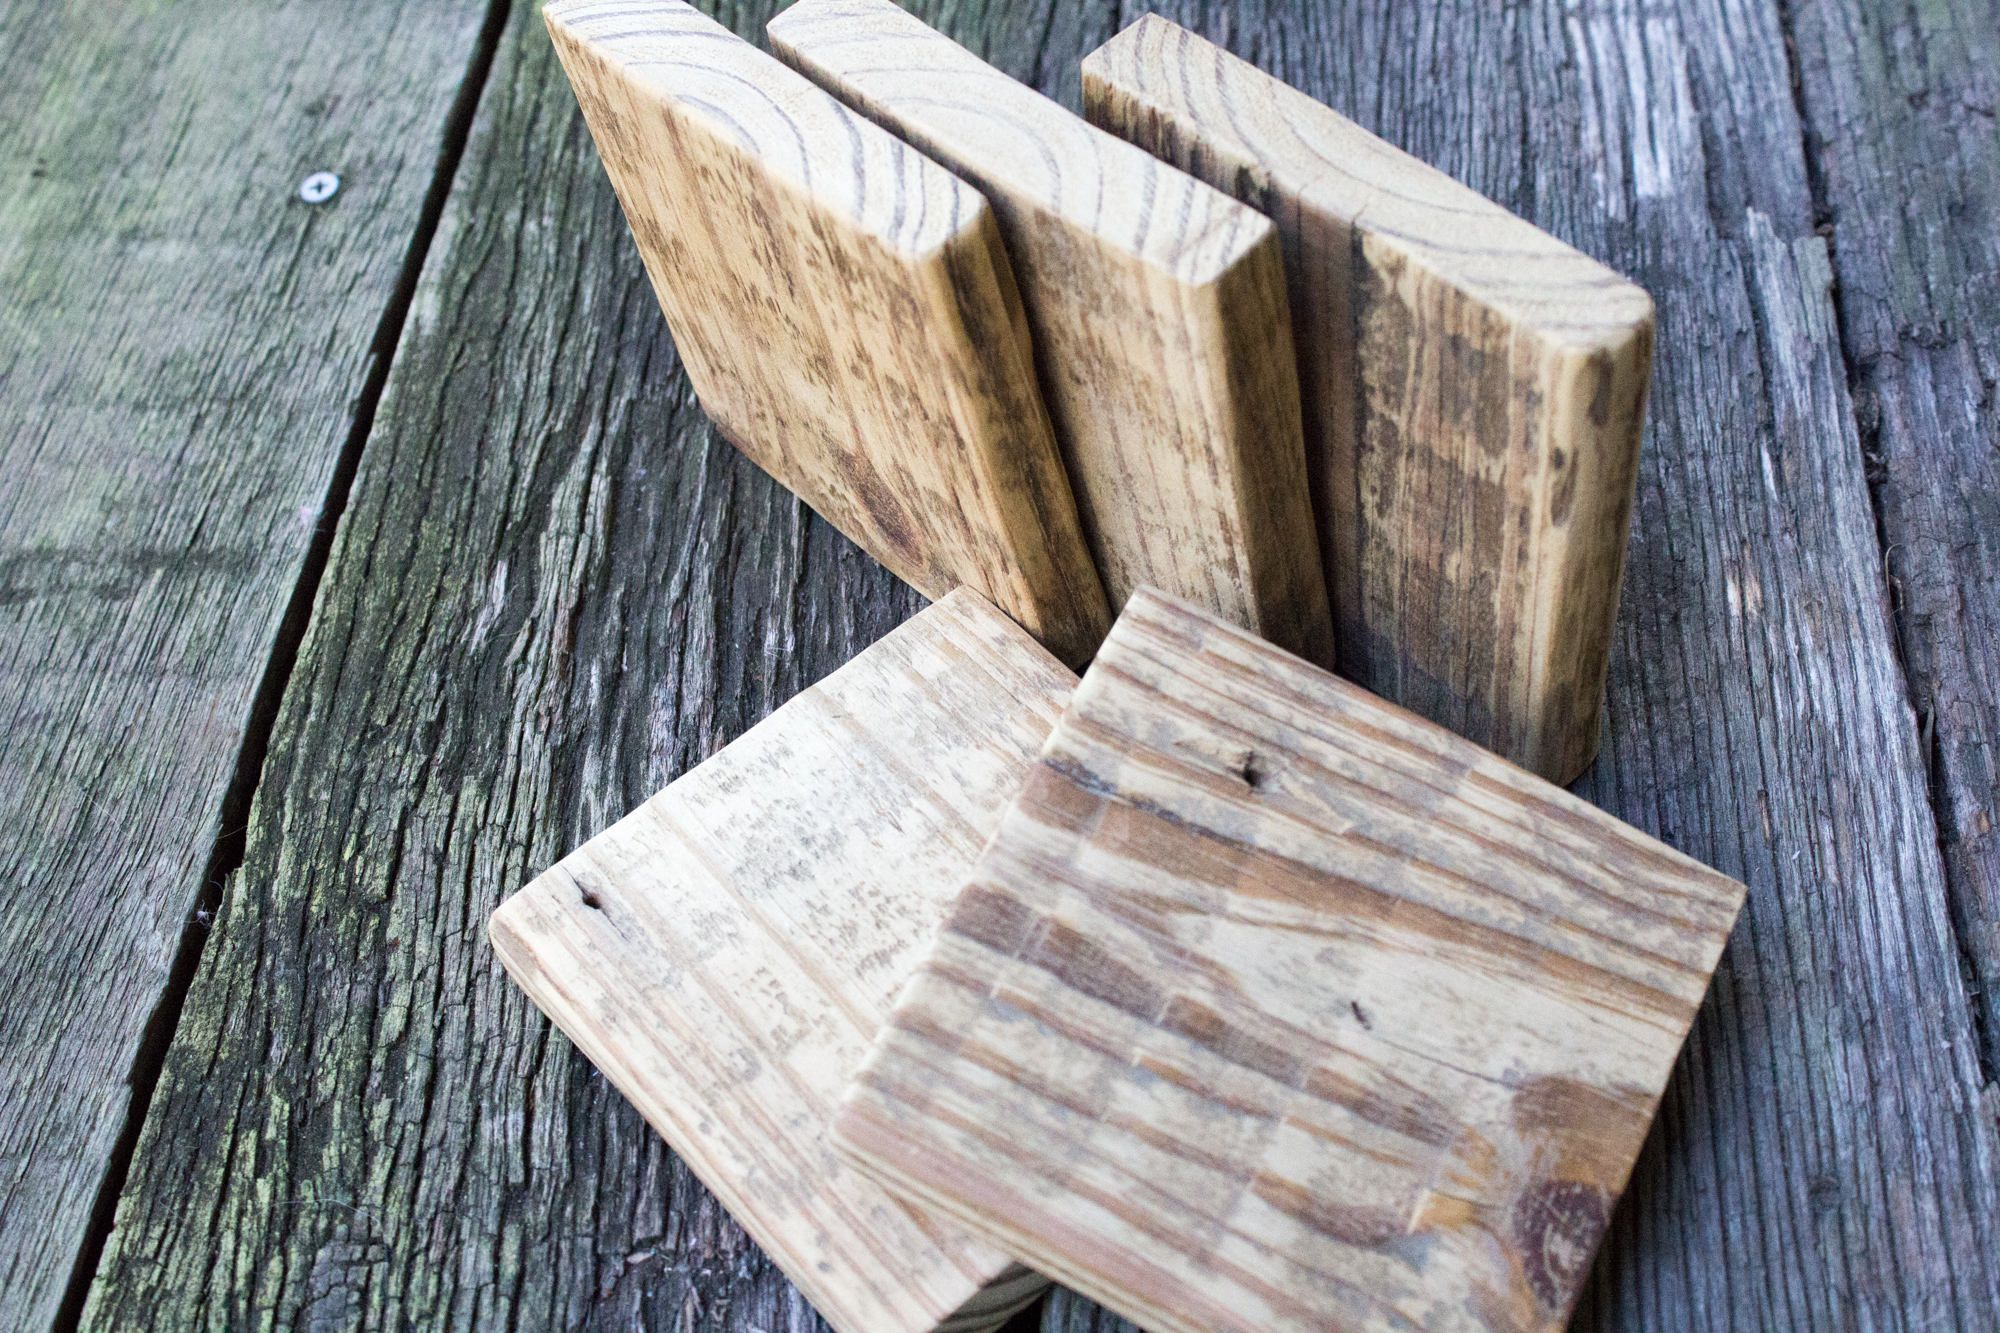 Handmade Reclaimed Wood Coasters Small Trivet Rustic Kitchen Home